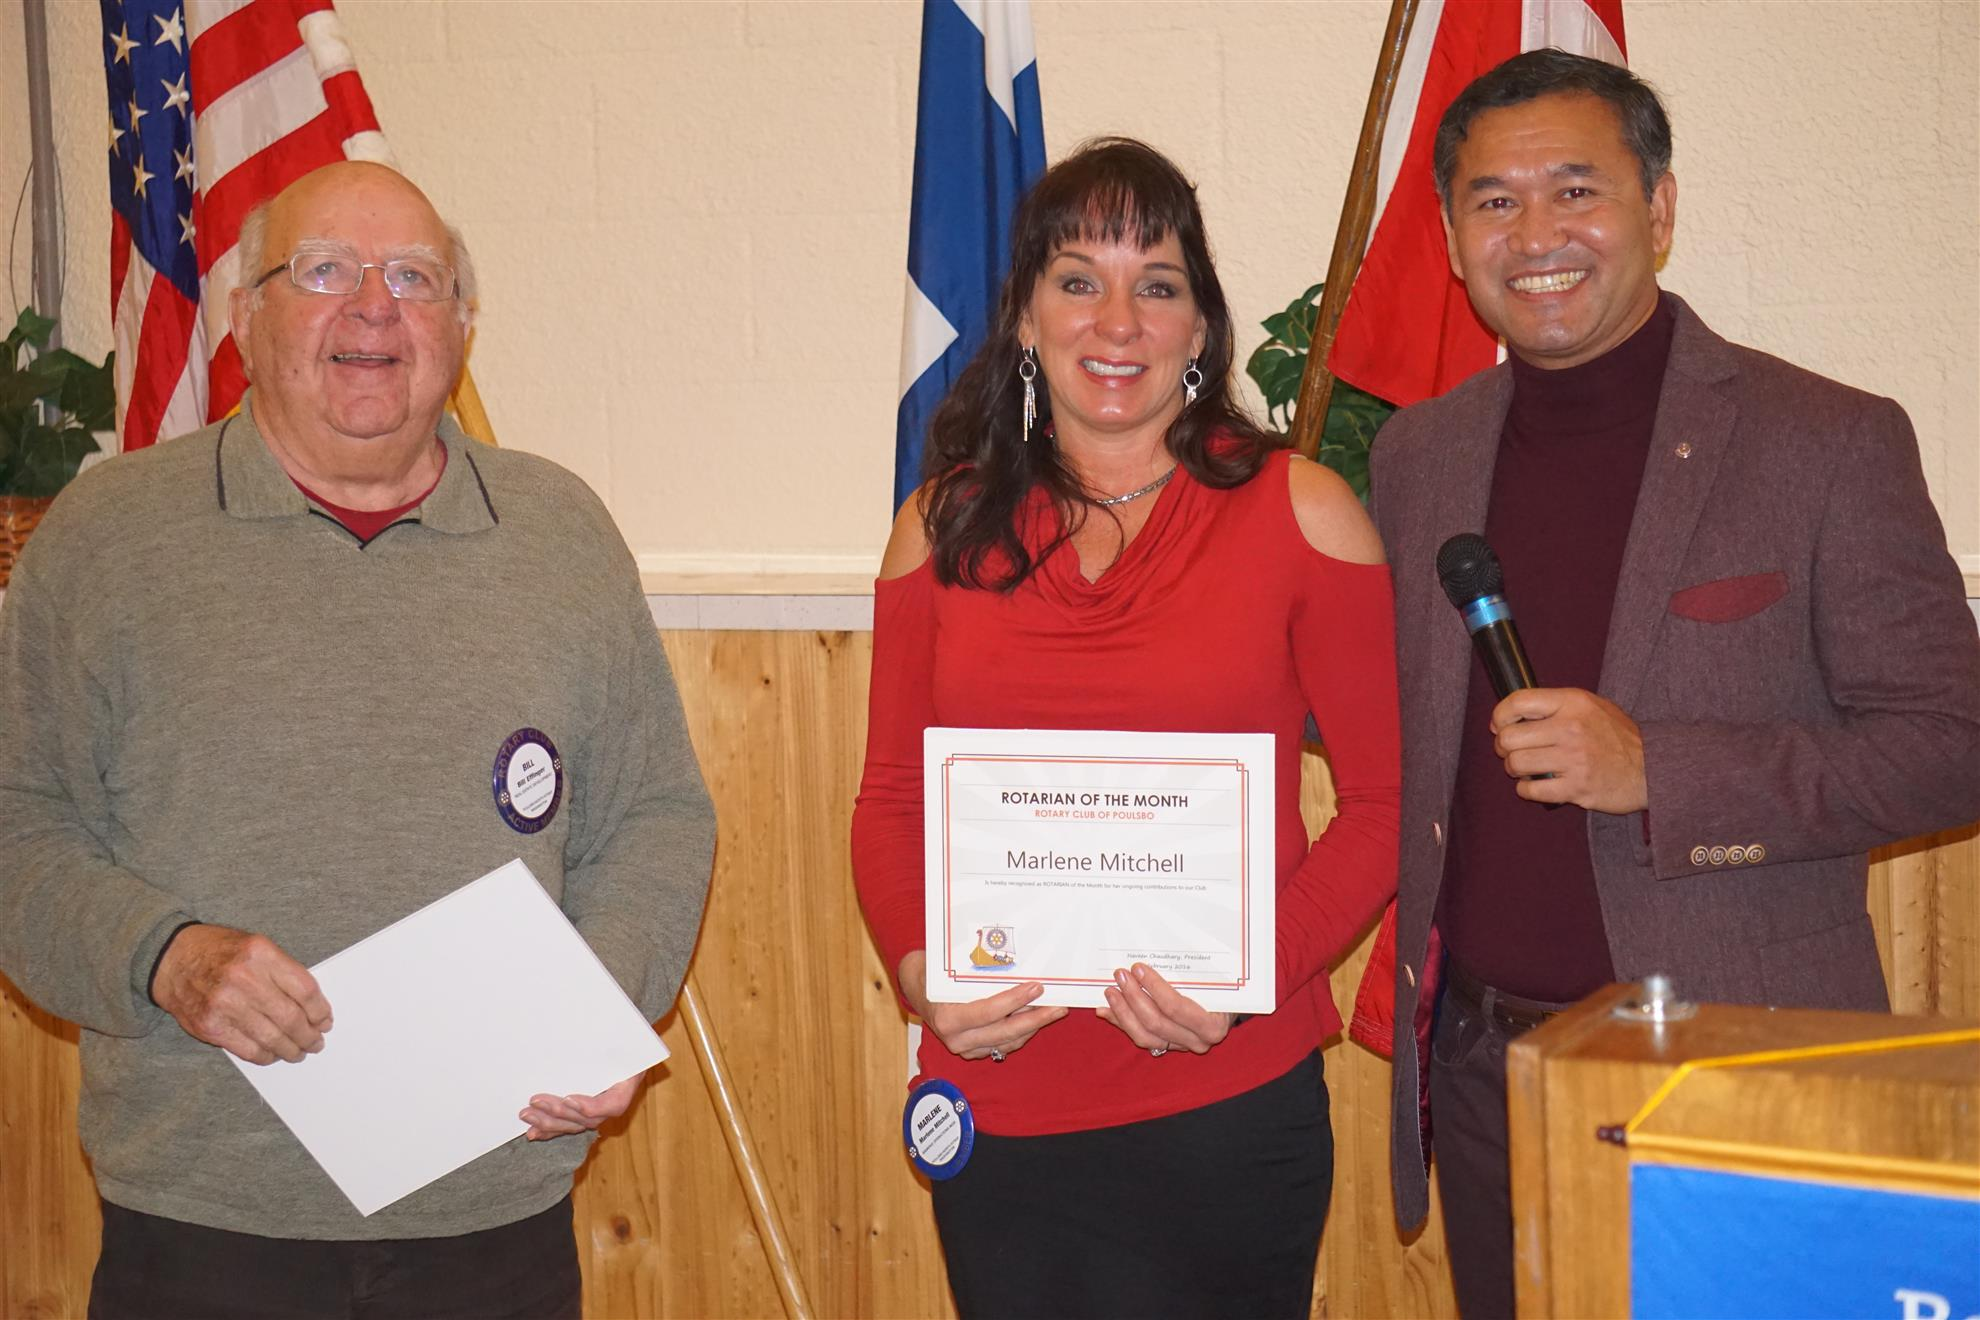 Bill Effinger and Marlene Mitchell - Rotarians of the Month